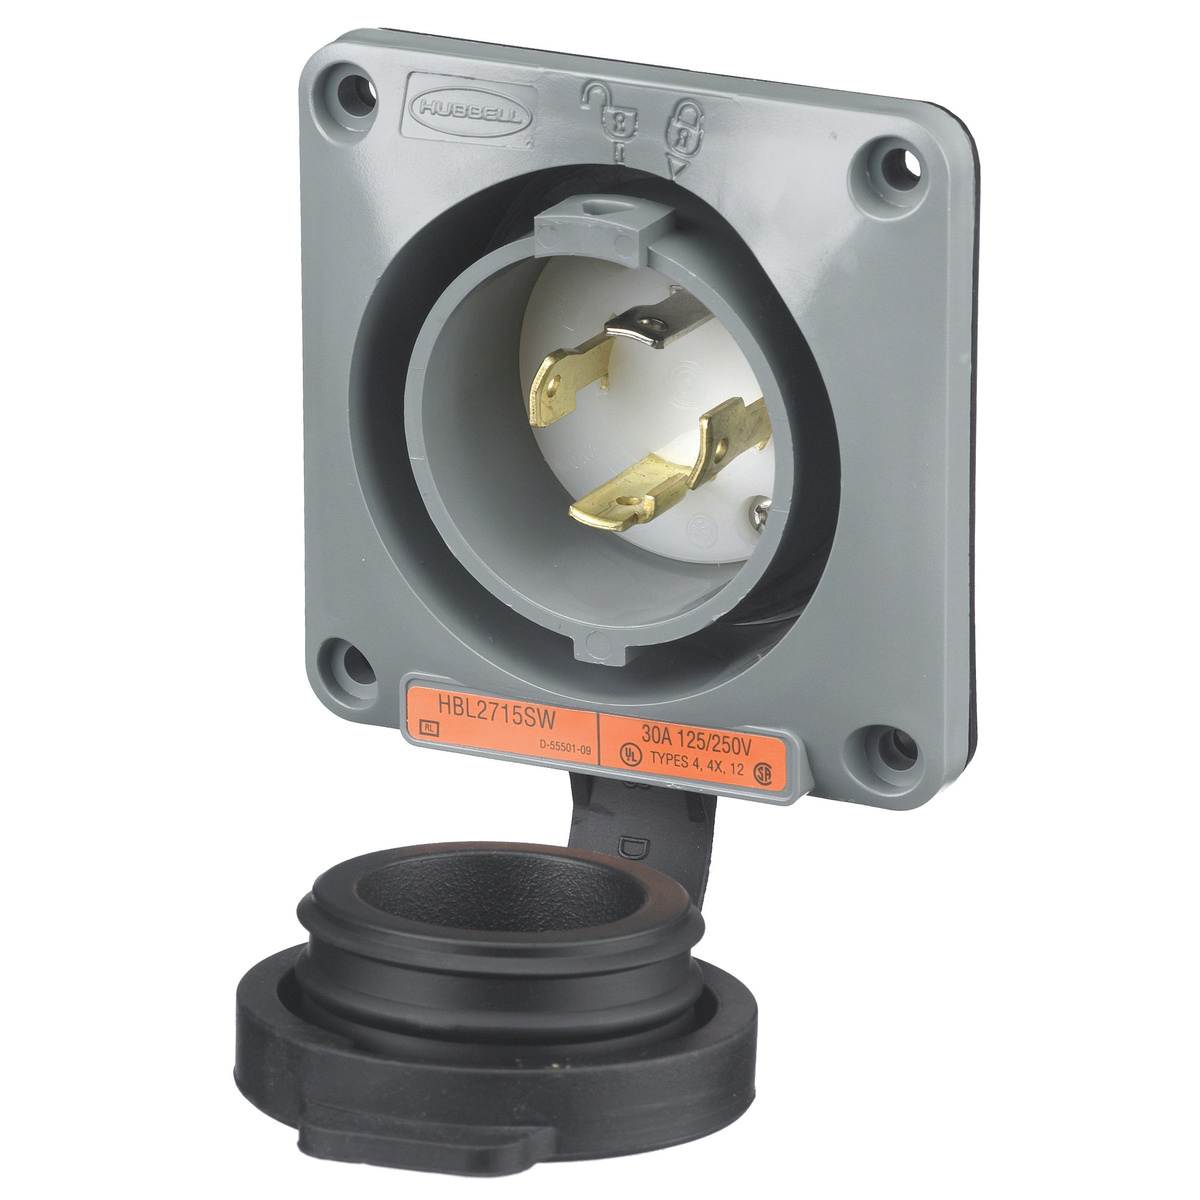 hight resolution of hubbell wiring hbl2715sw extra heavy duty watertight polarized locking receptacle 3 pole 4